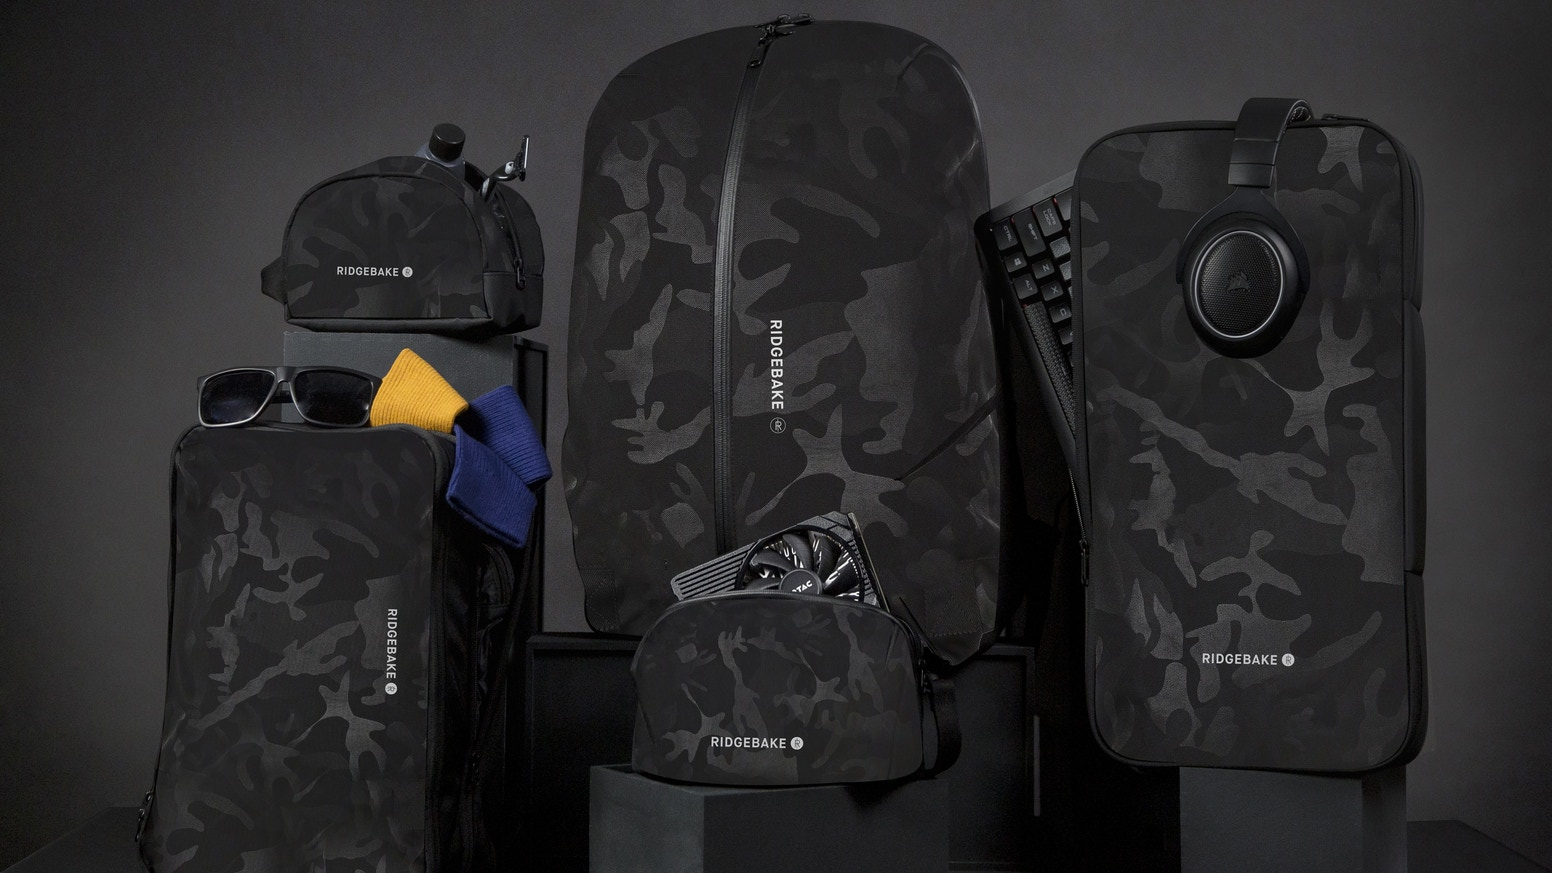 Finally... a gaming/travel bag that doesn't make you choose between function and design